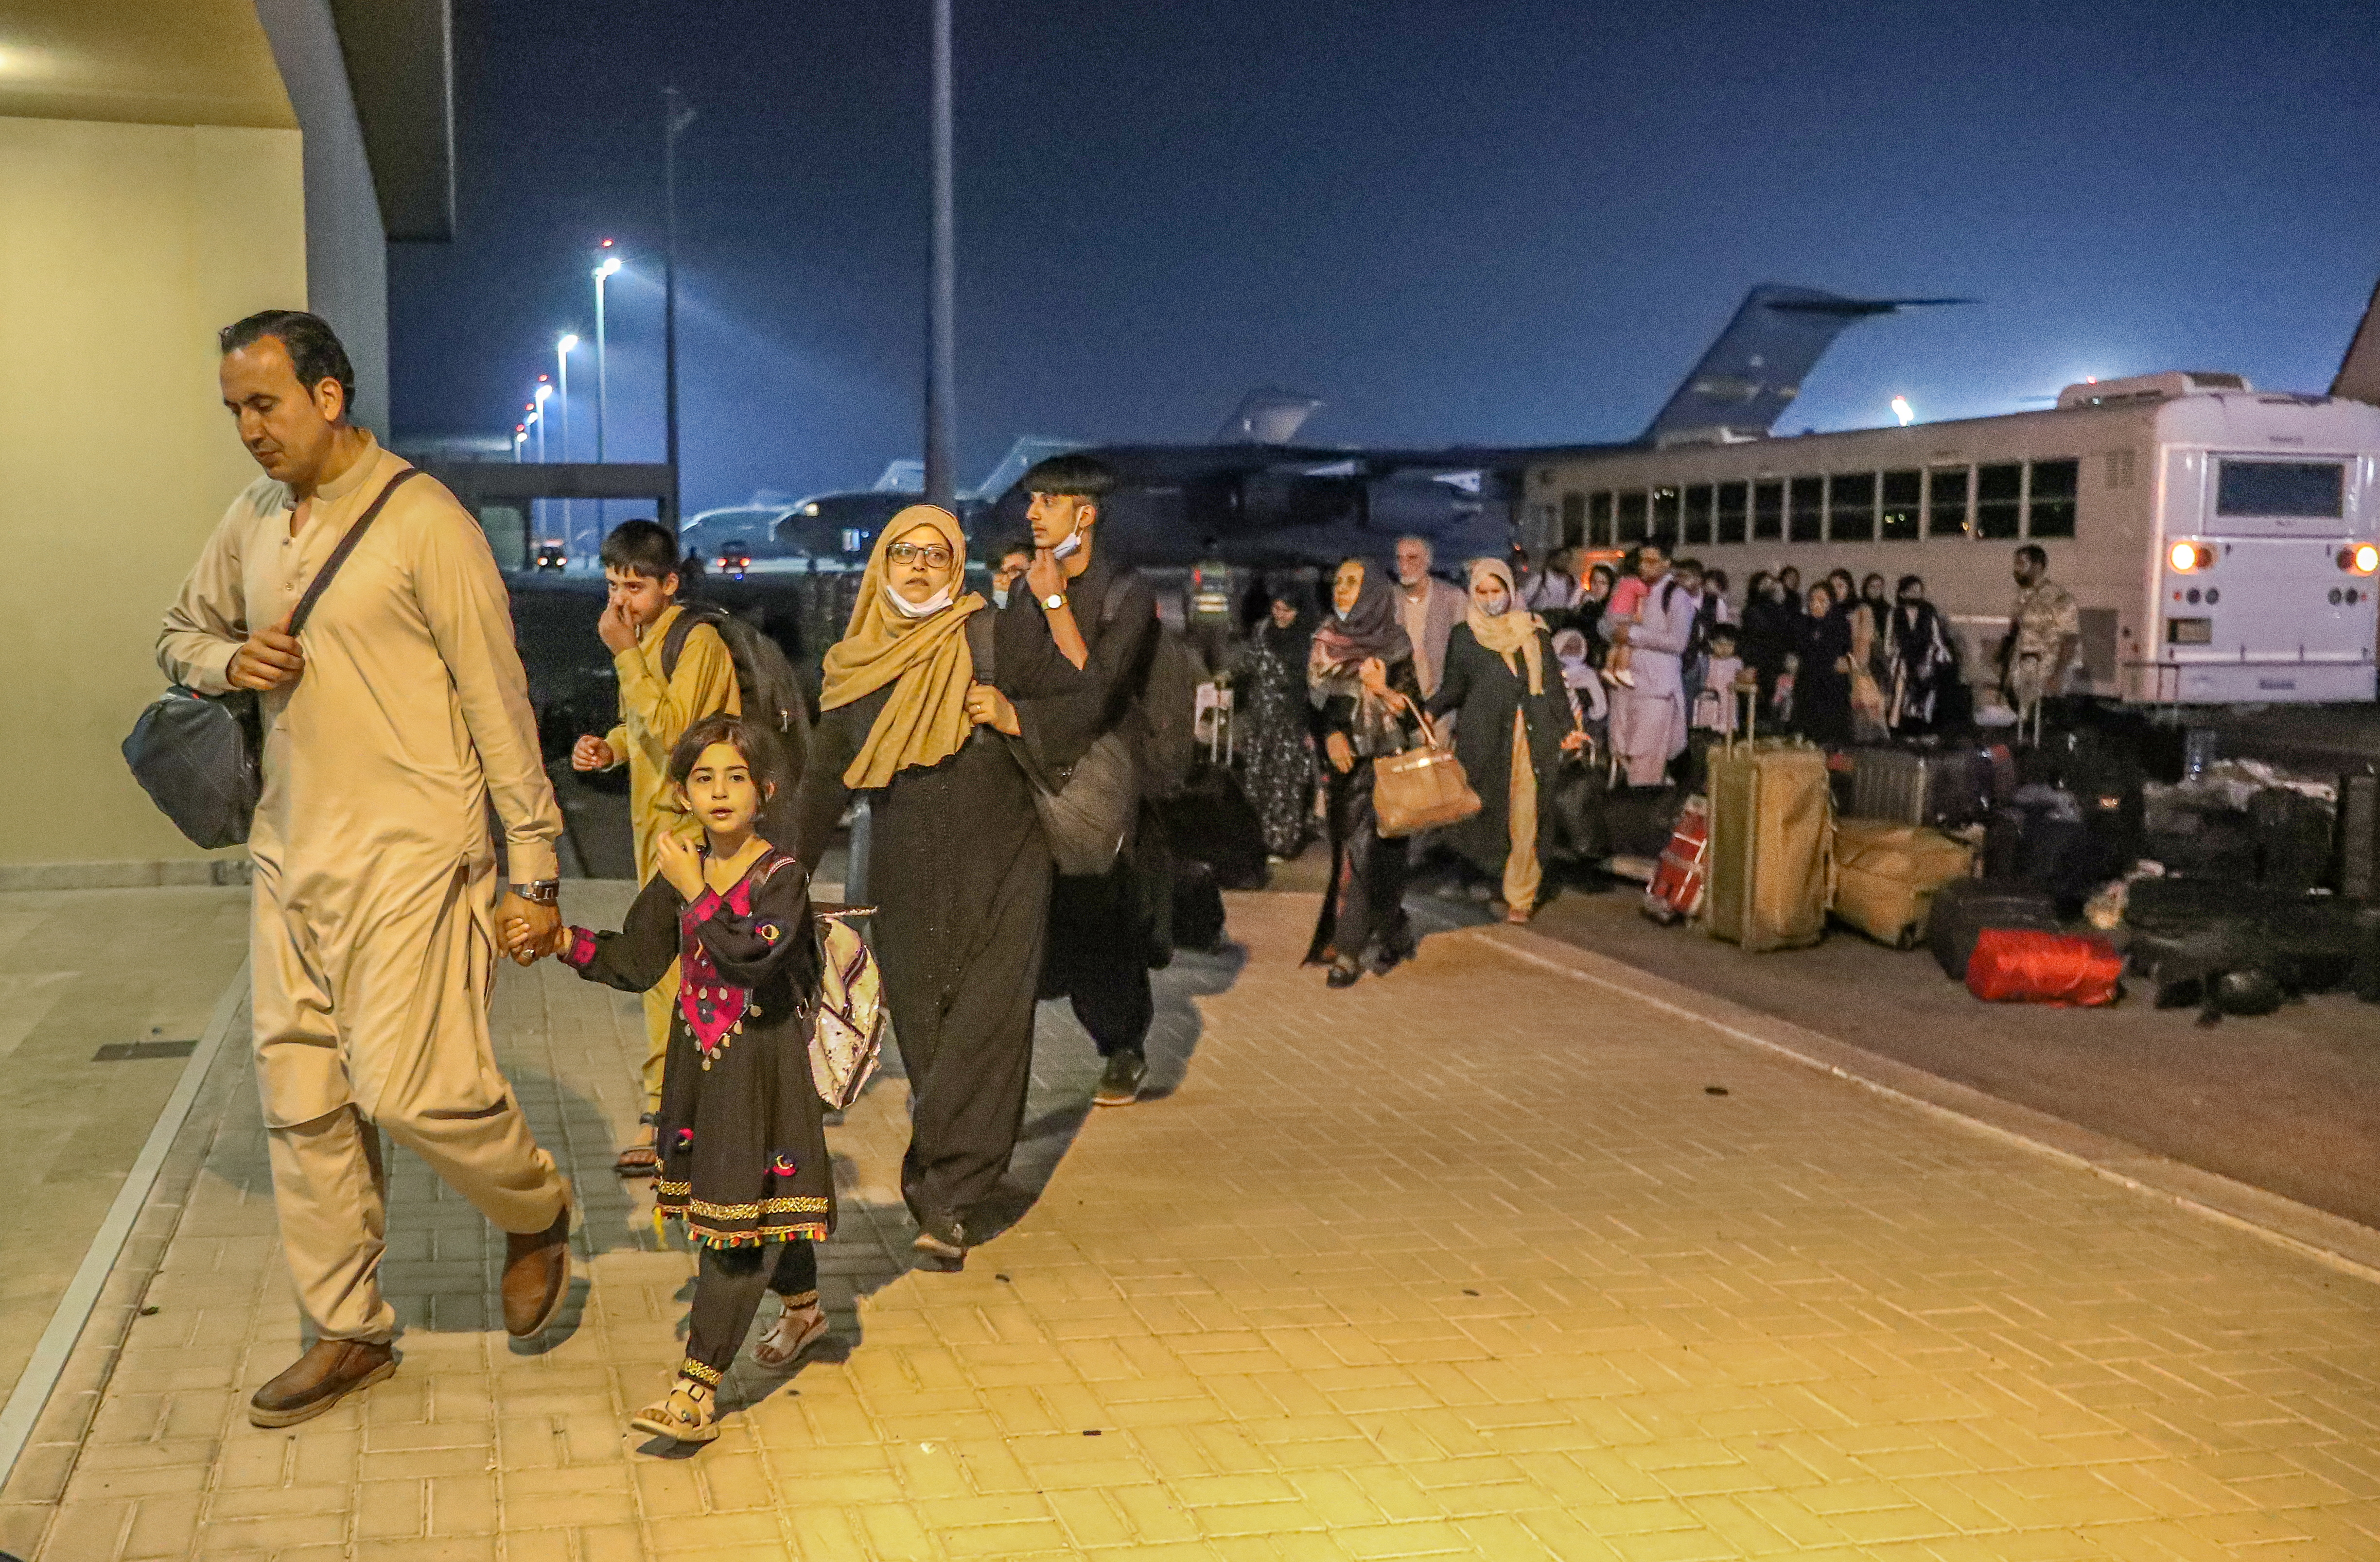 Evacuees from Afghanistan arrive at Al-Udeid airbase in Doha, Qatar in this recent undated handout. Government Communications Office of the State of Qatar/Handout via REUTERS